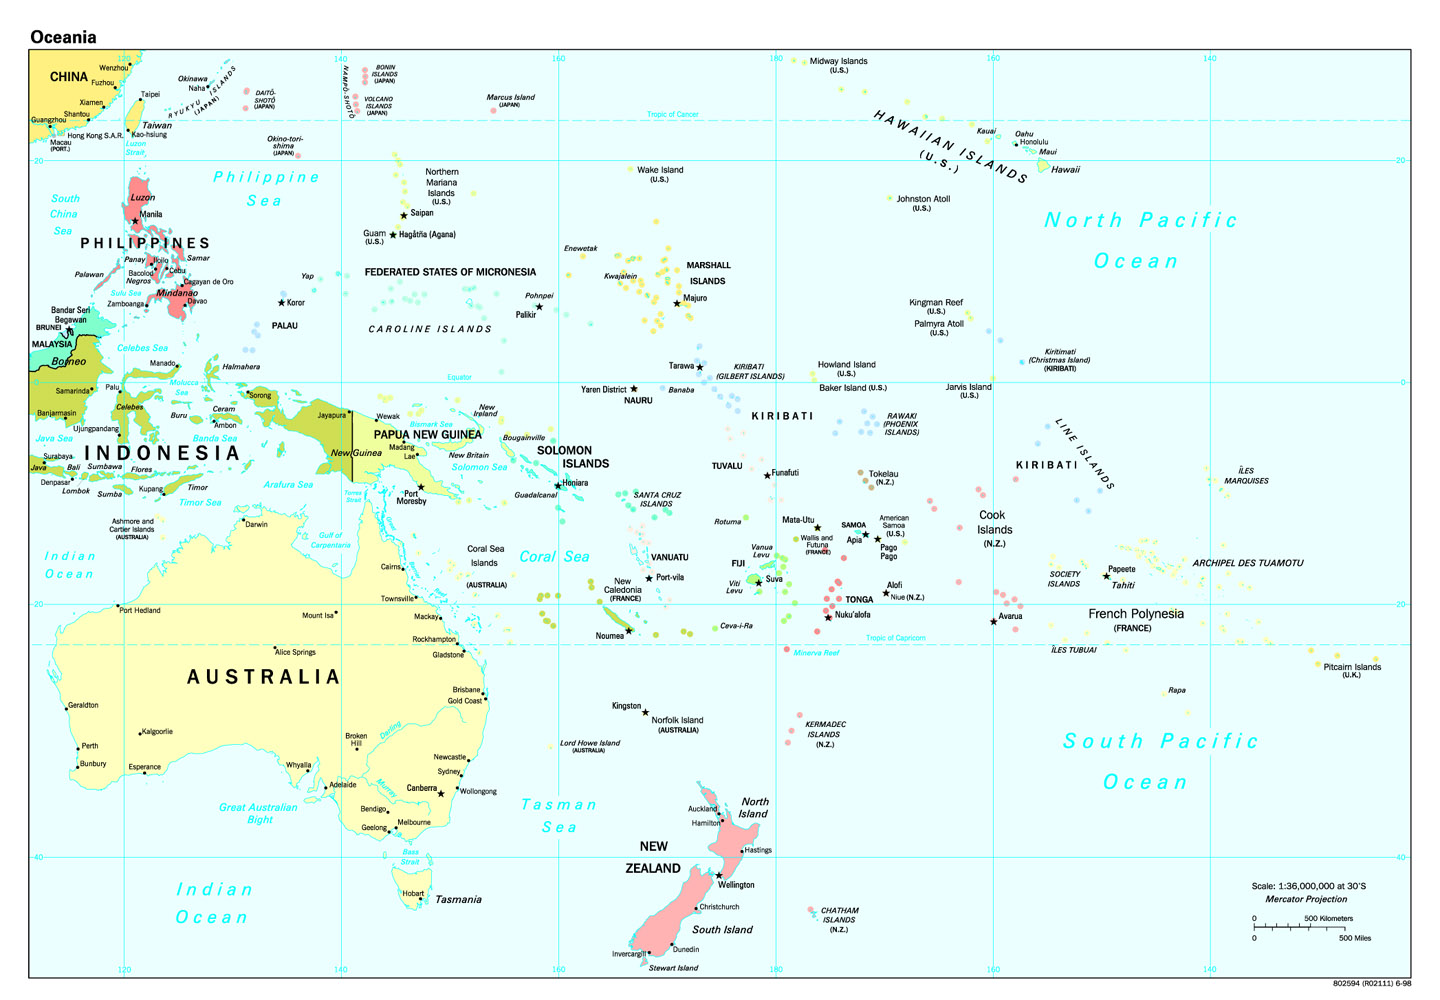 south pacific political map South Pacific Ocean Political Map Mapsof Net south pacific political map